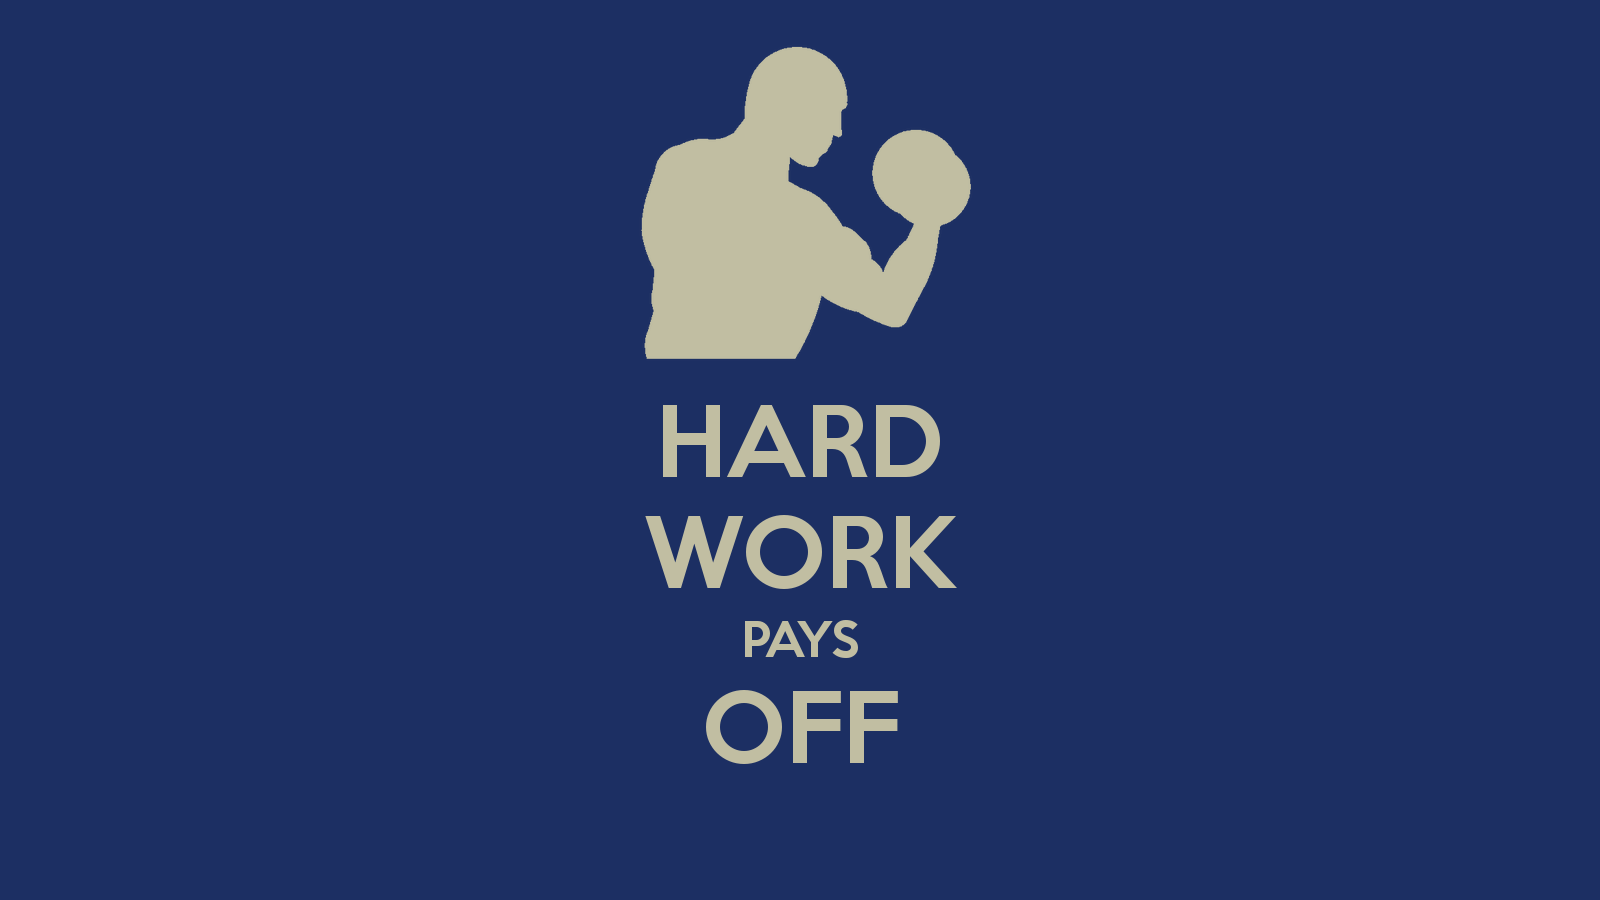 Hard Work Pays Off Quotes Quotesgram